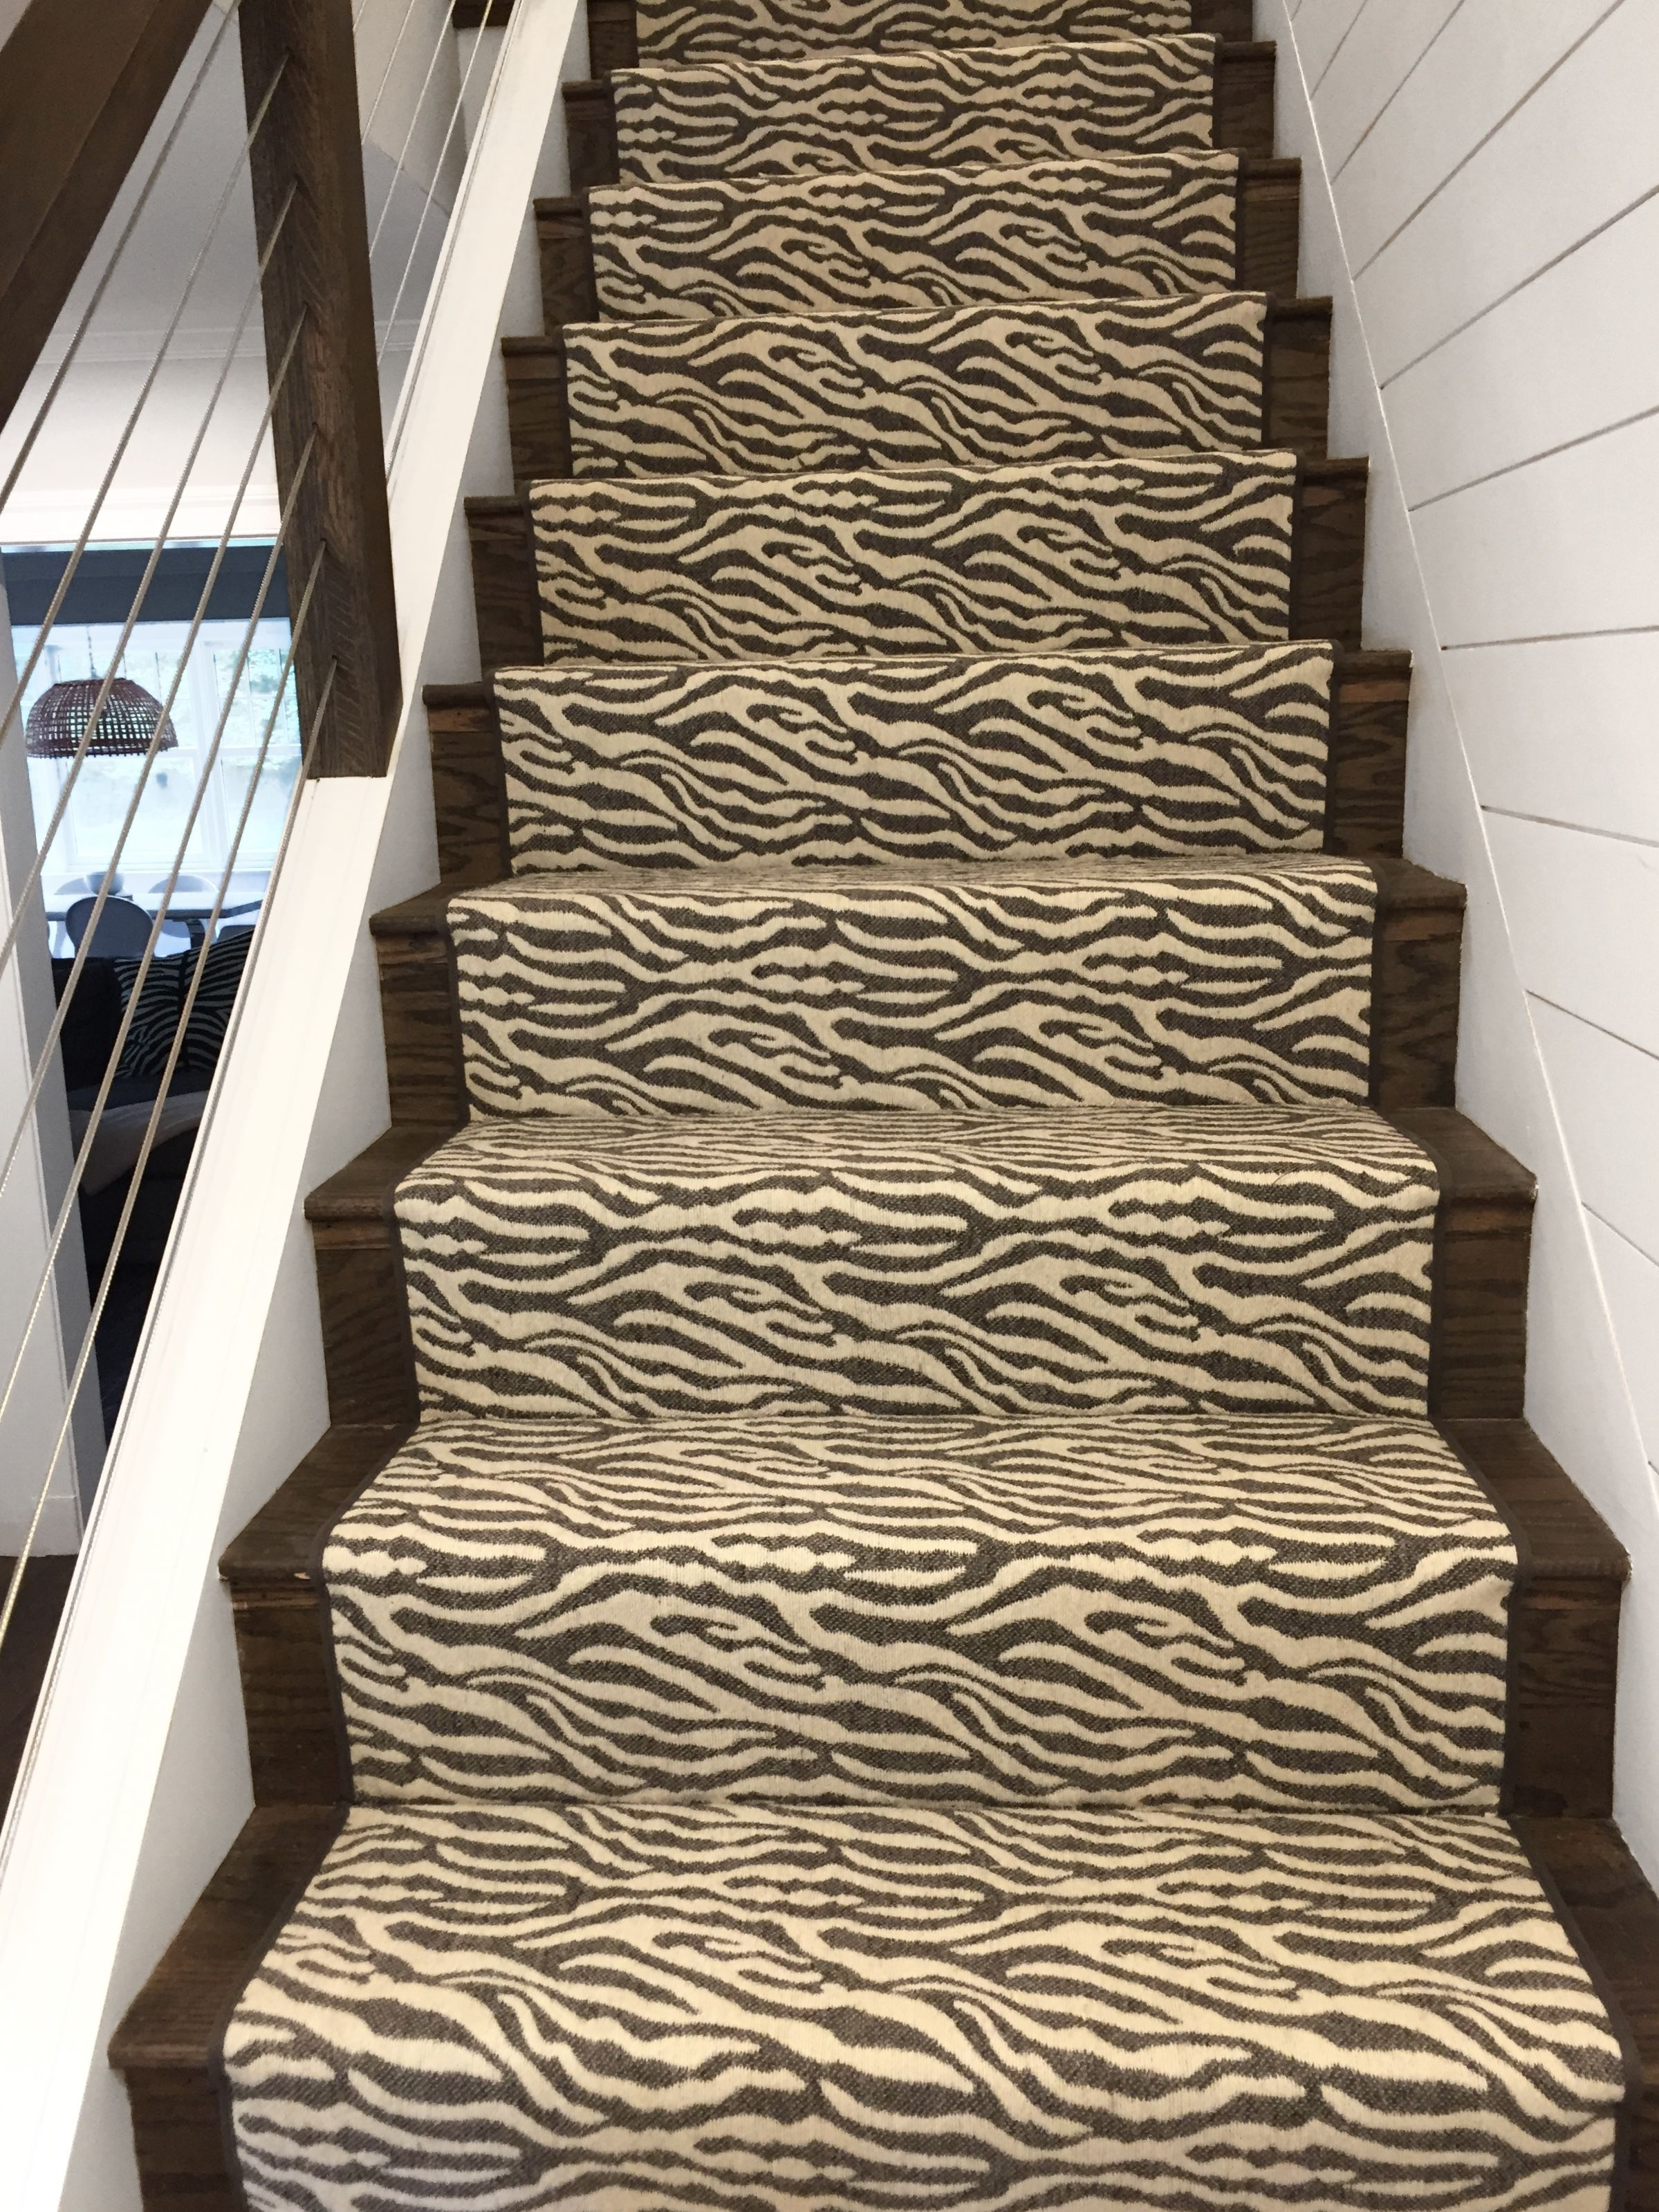 Stairs Just Wanna Have Fun We Love A Runner That Makes Such A   Stair Carpets For Sale   Wool   Flooring   Skid   Anderson Tuftex   Mallorca